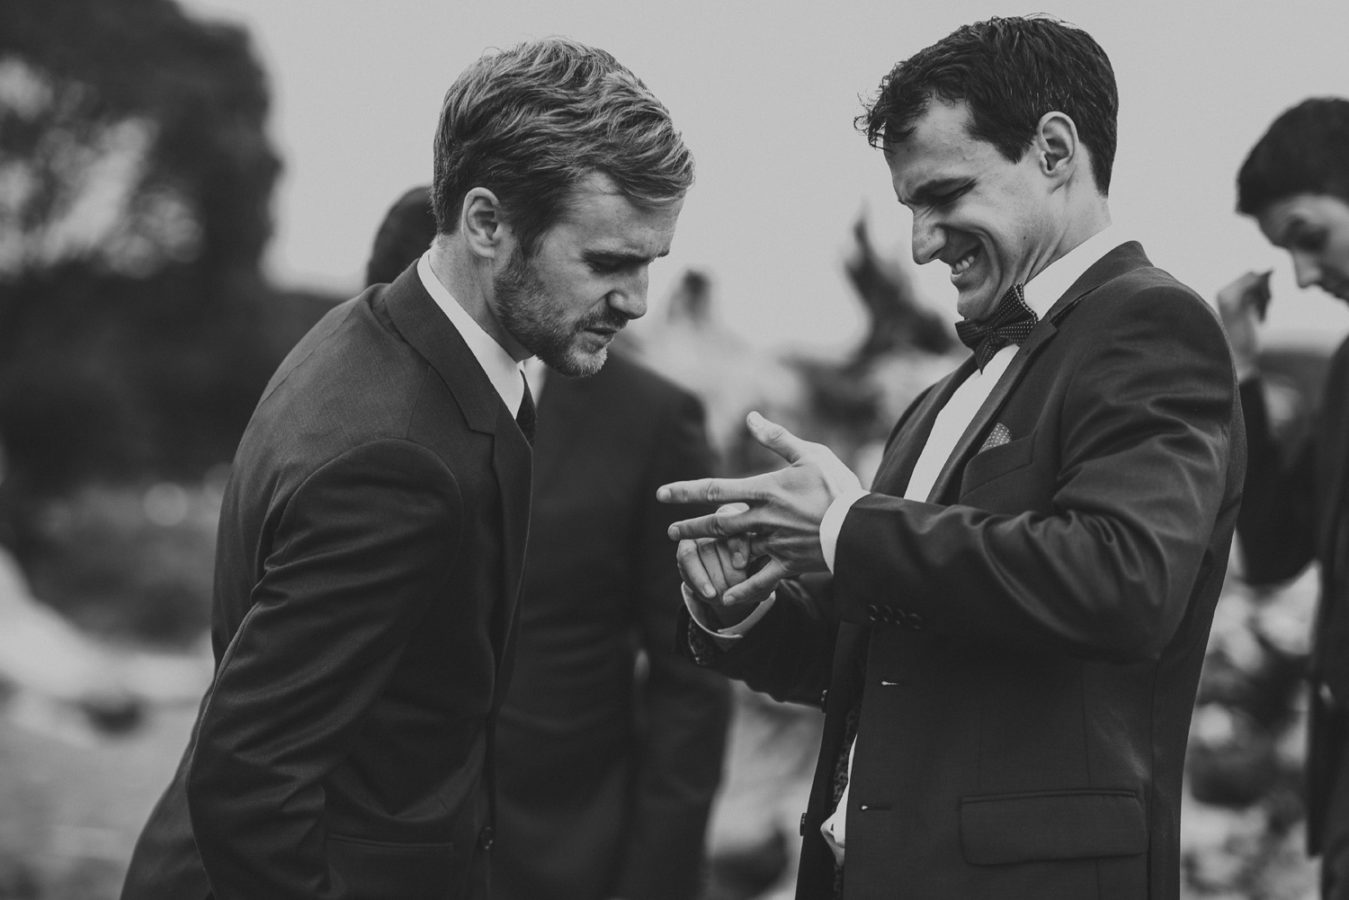 groom trying to pull off his wedding ring to show his friend but it's stuck